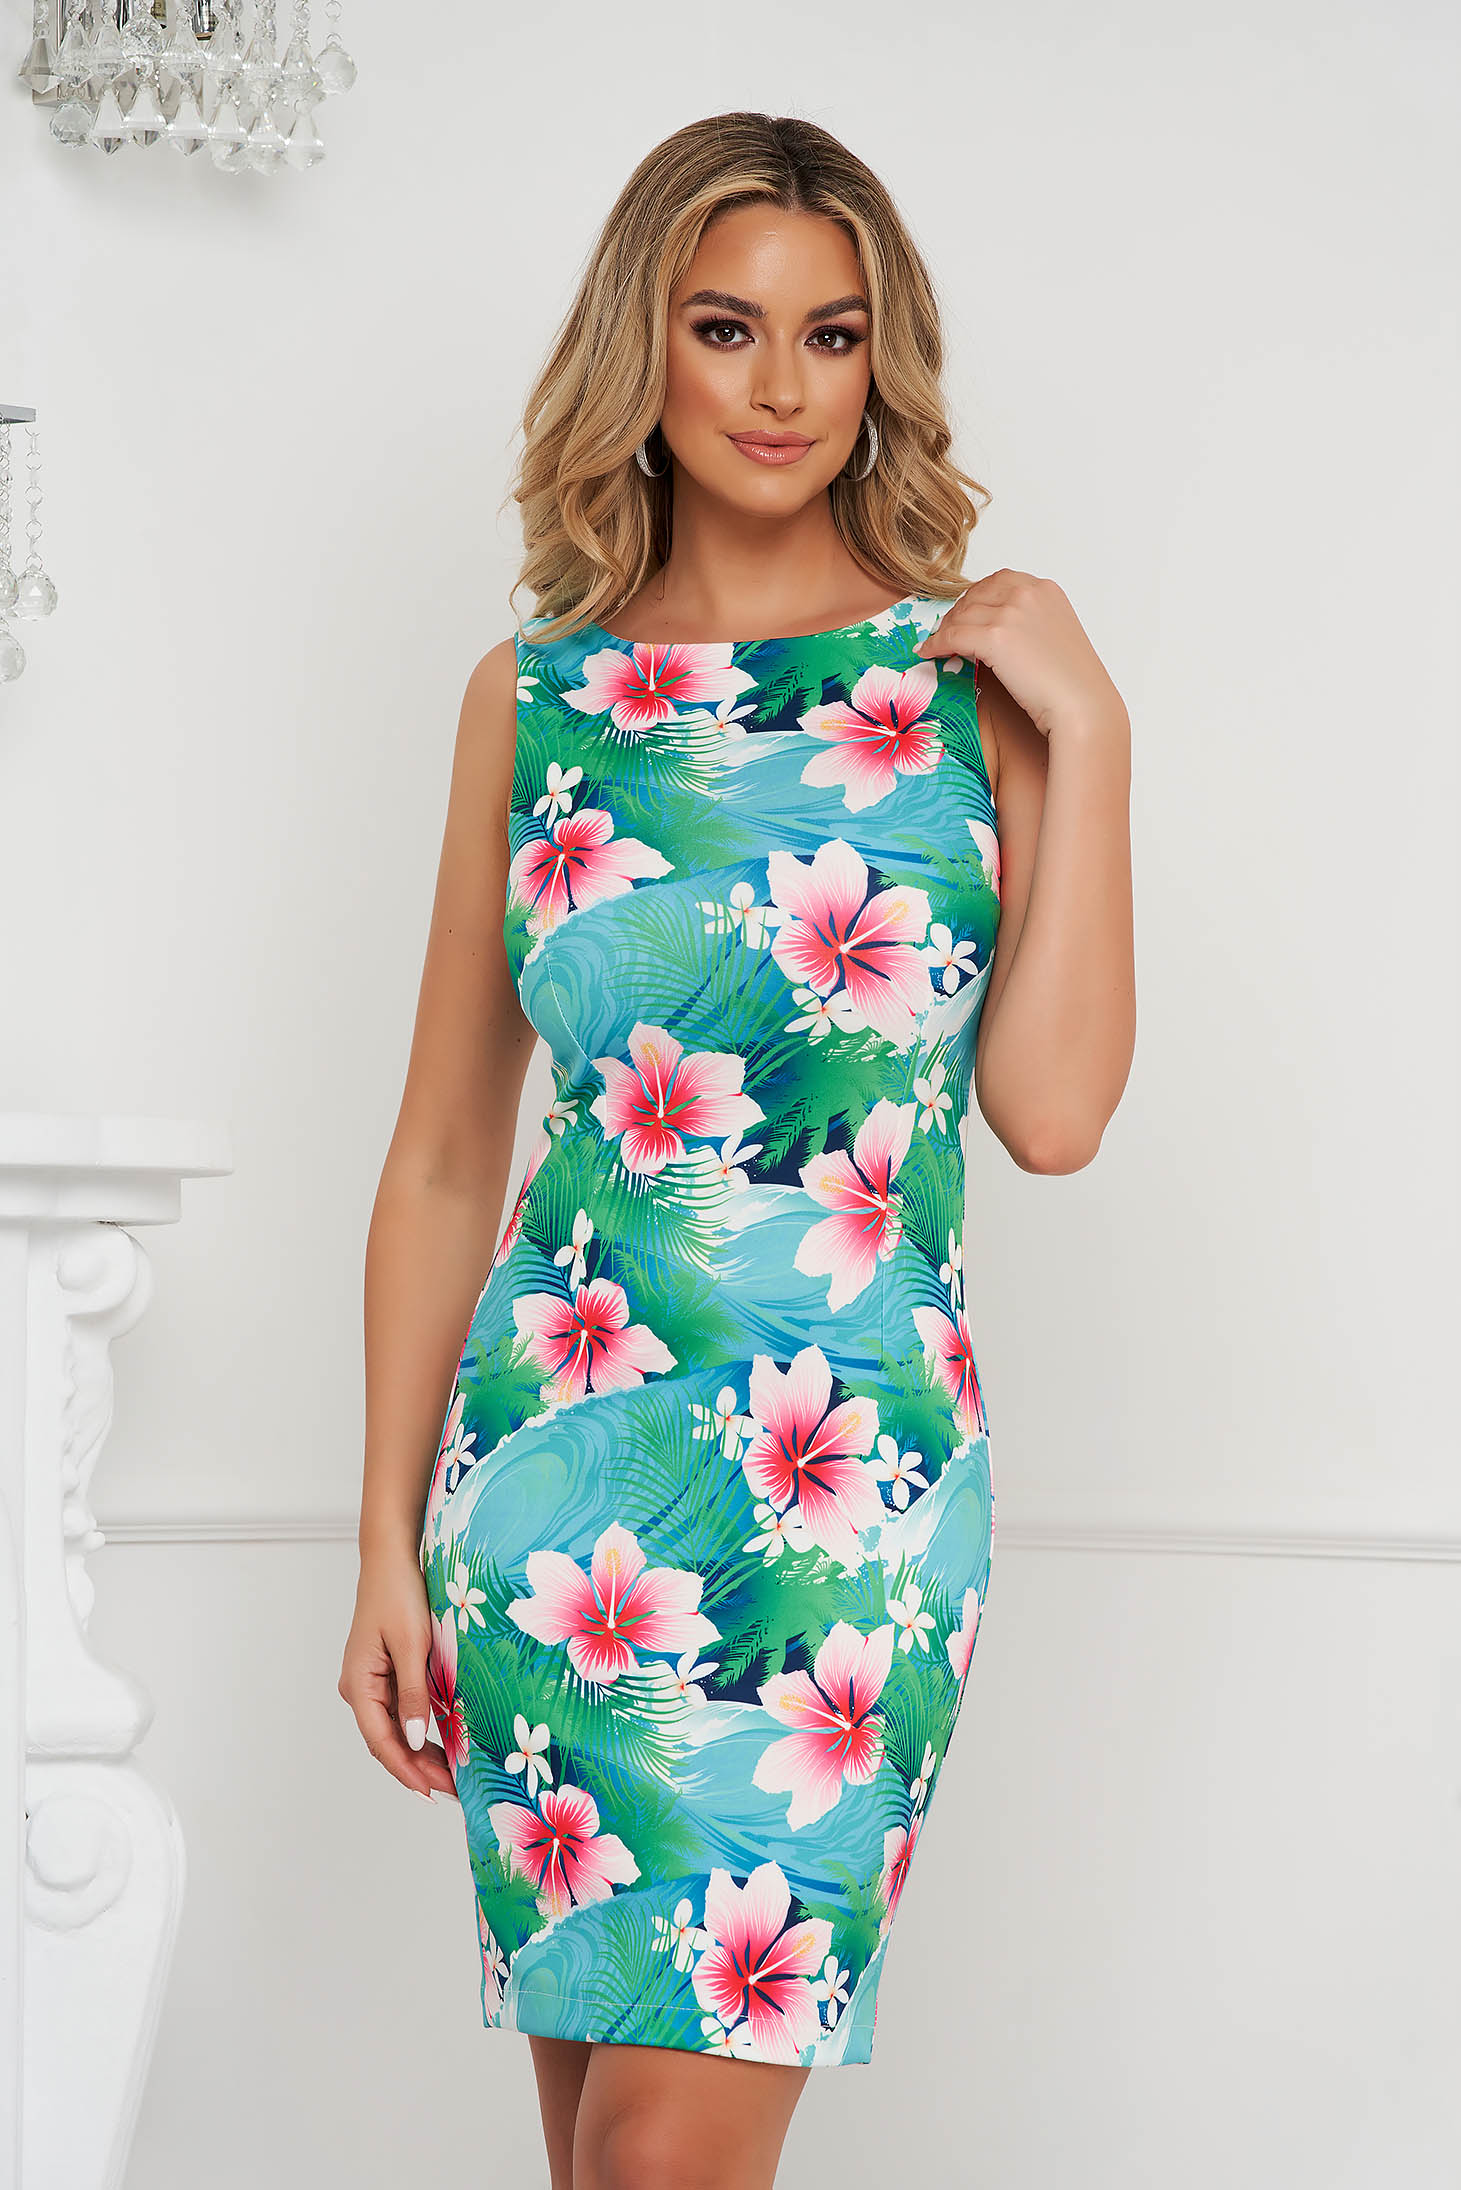 StarShinerS dress office short cut pencil with floral print sleeveless